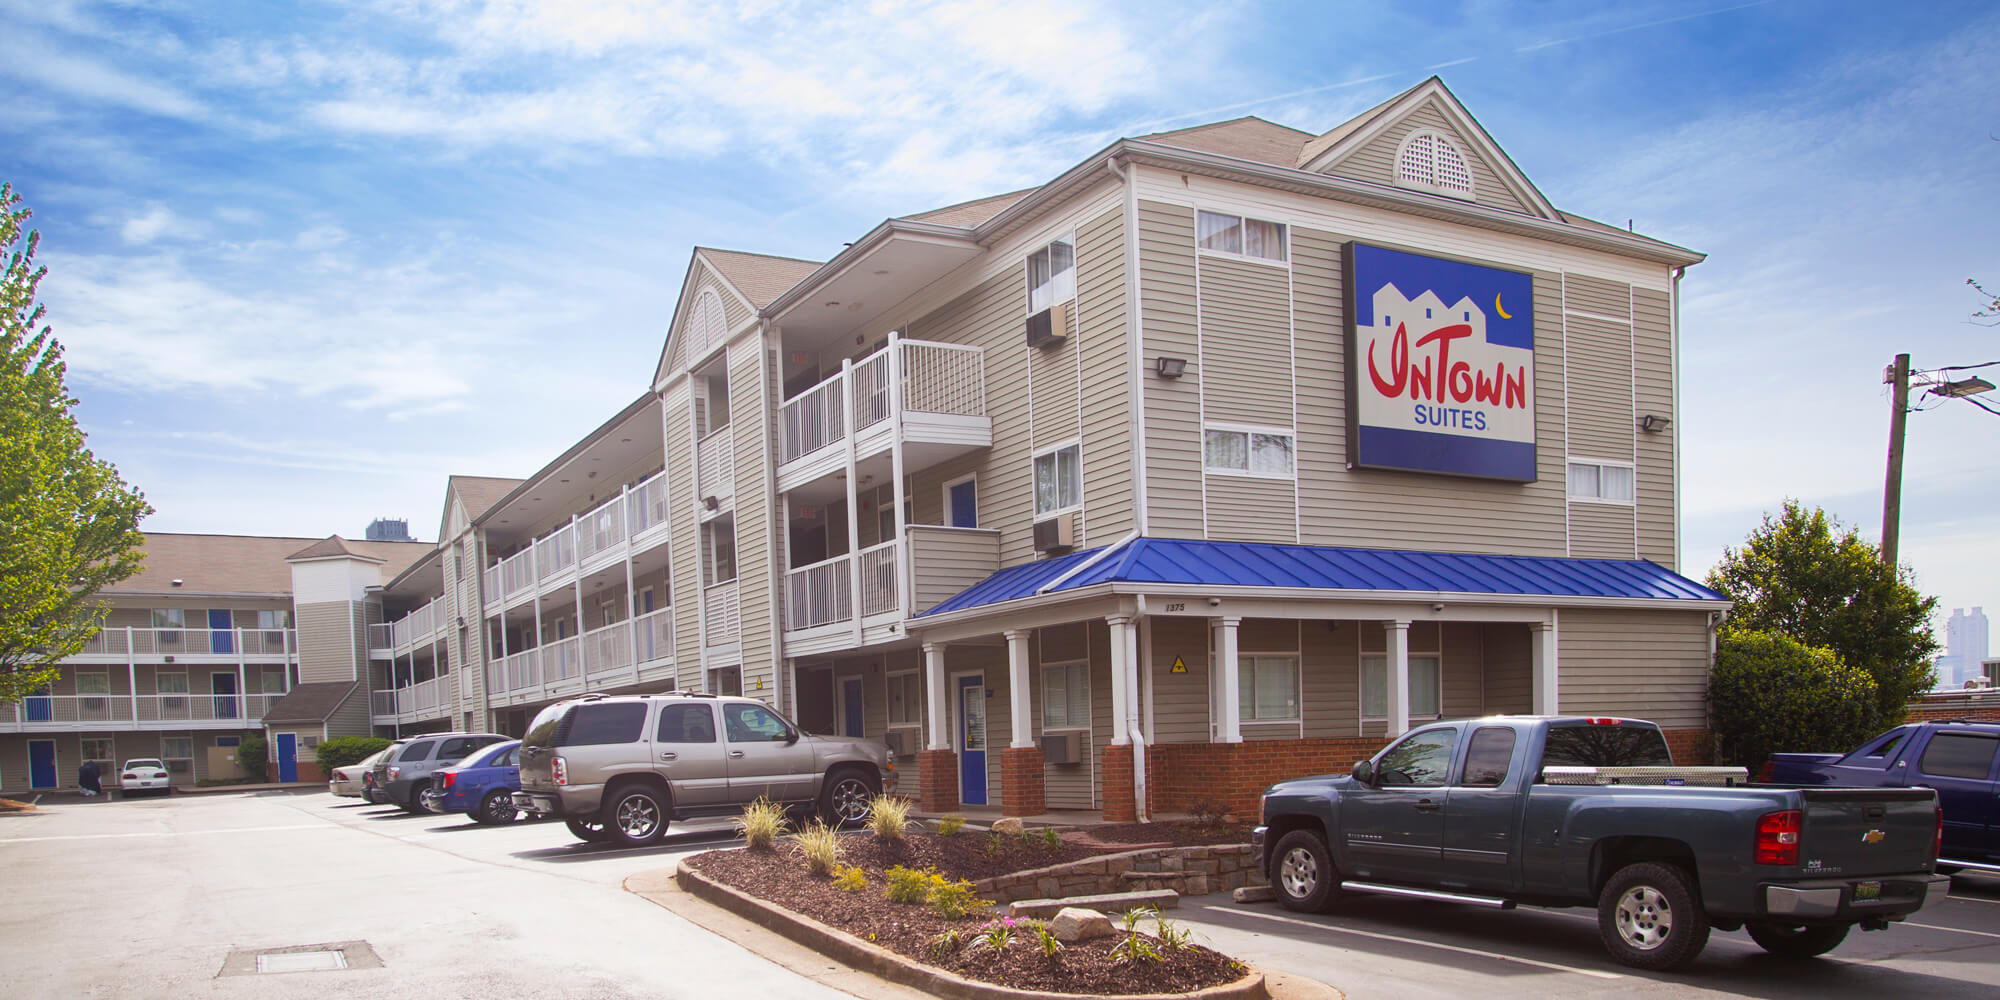 hotels with kitchens in atlanta ga kitchen sink hose weekly rate hotel intown suites extended stay property